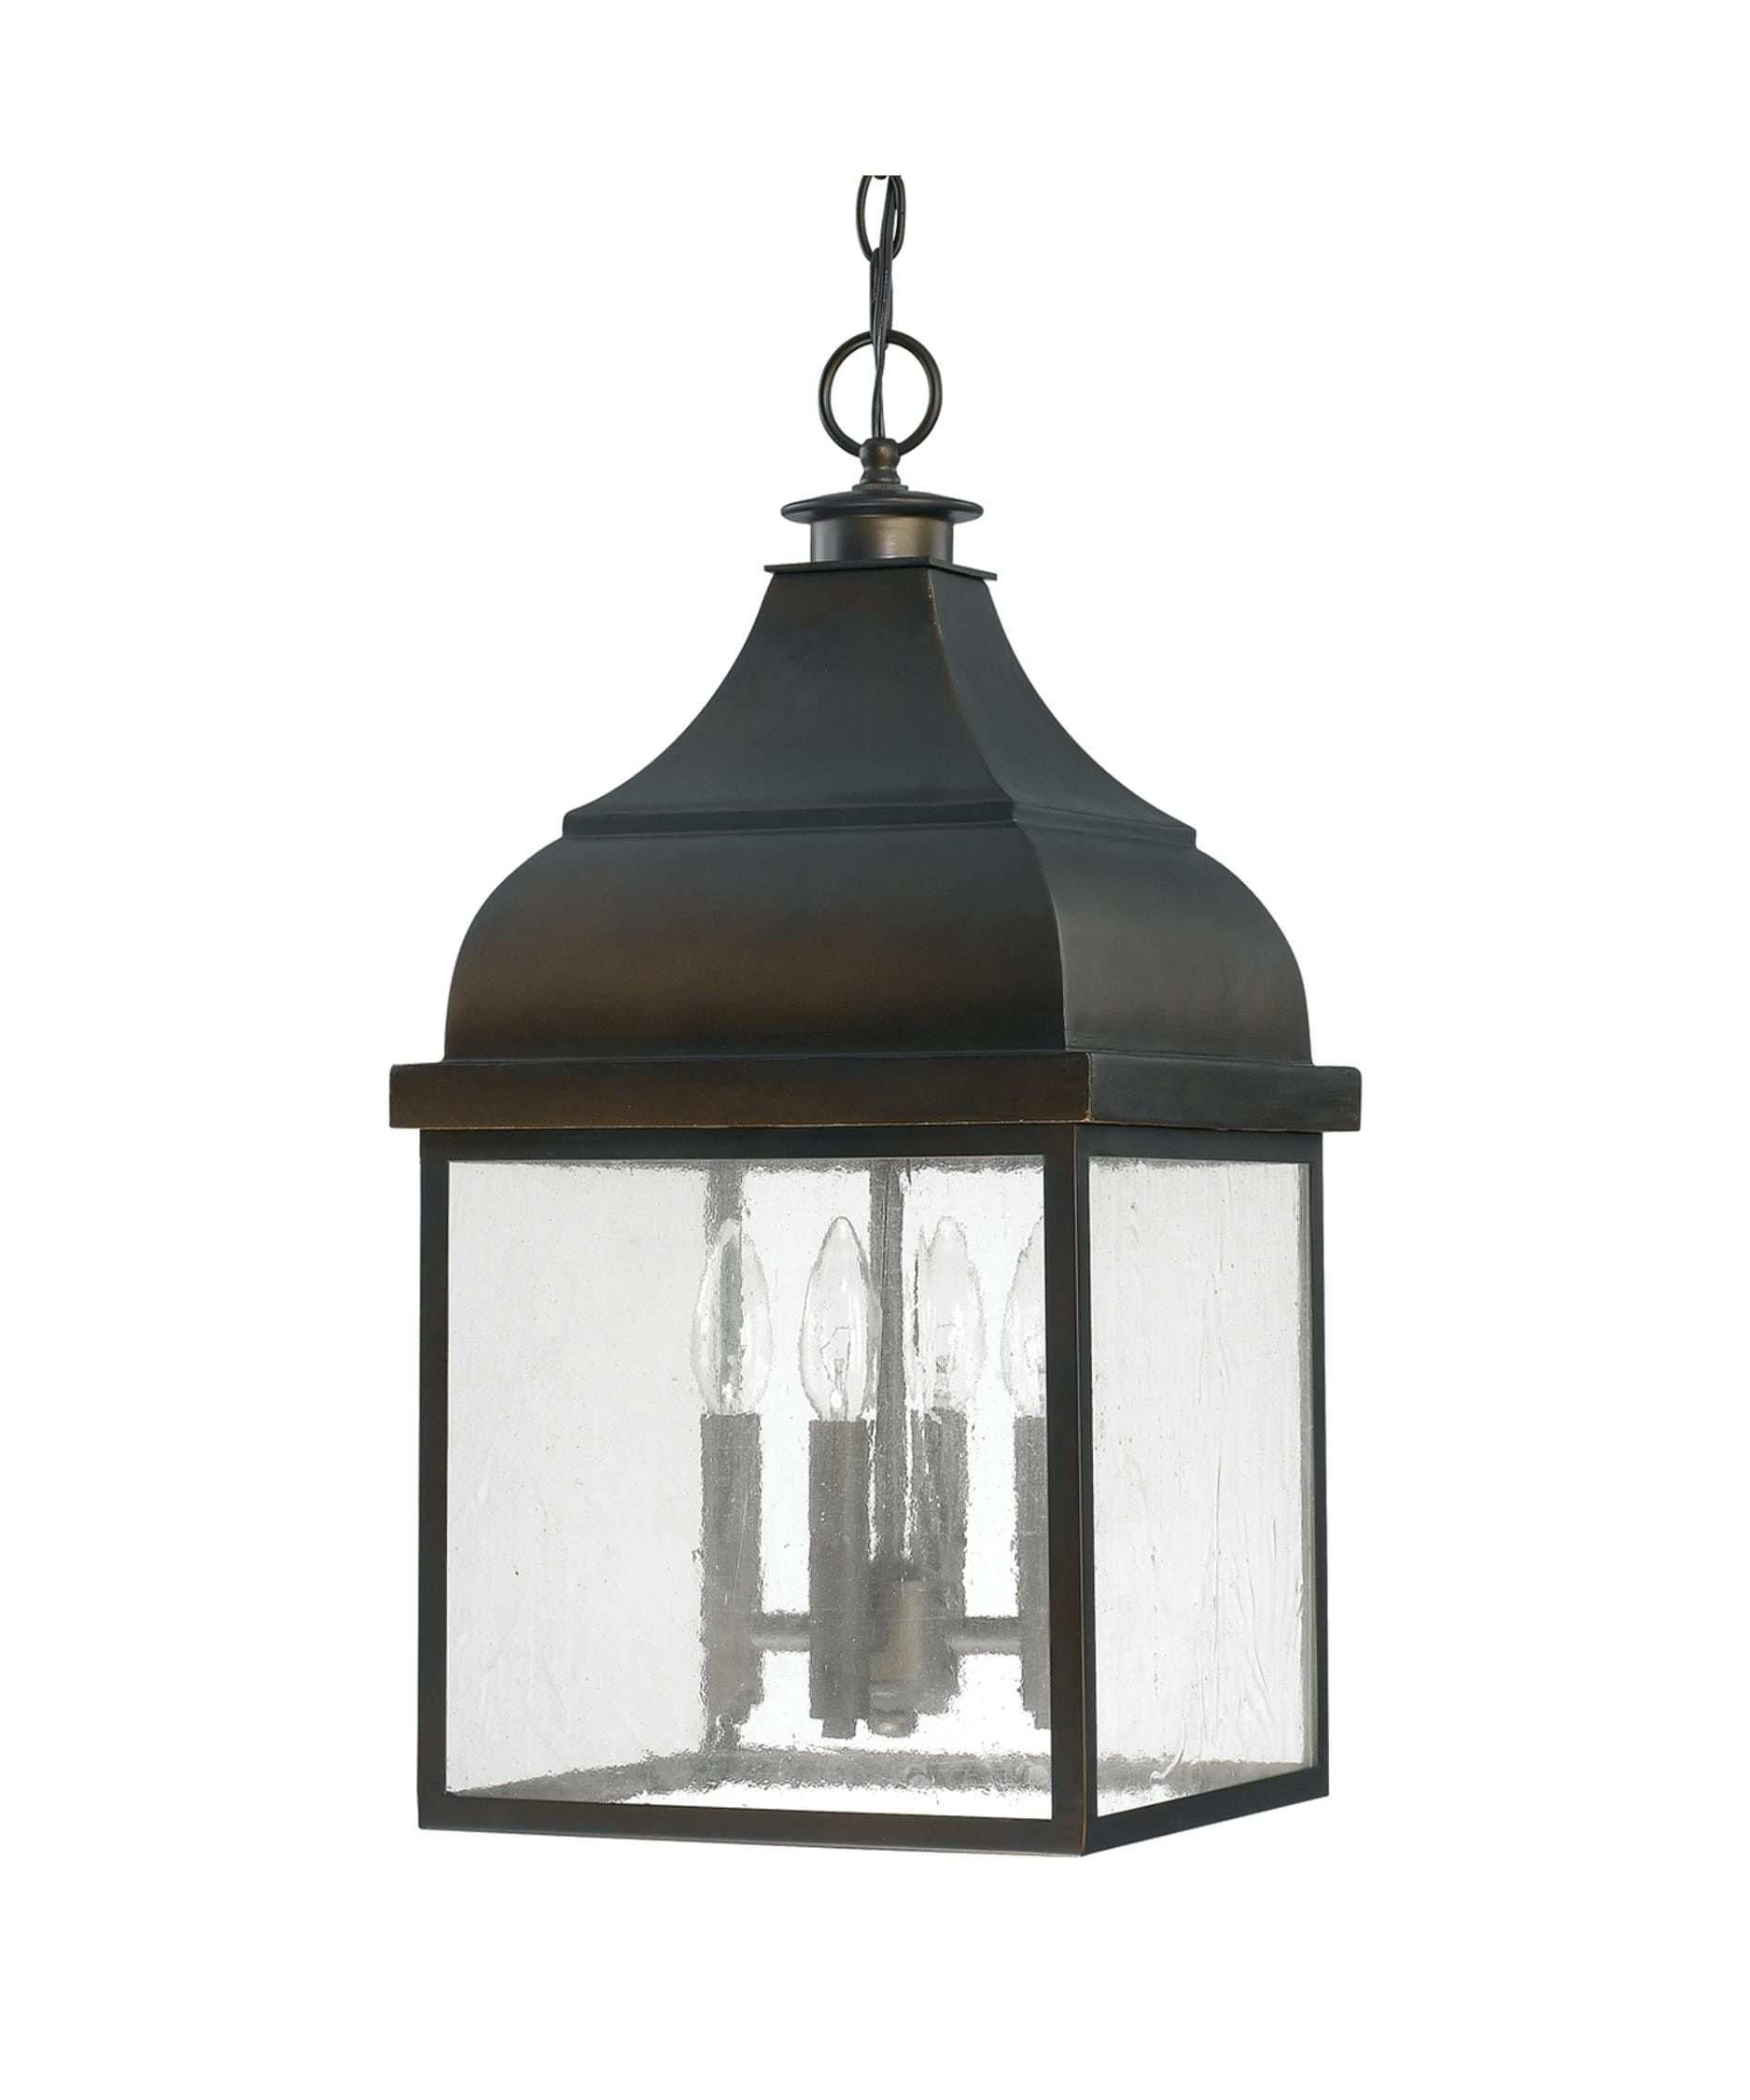 Preferred Wayfair Outdoor Hanging Lights Regarding Wayfair Ceiling Light Fixtures Beautiful Outdoor Hanging Light (View 8 of 20)